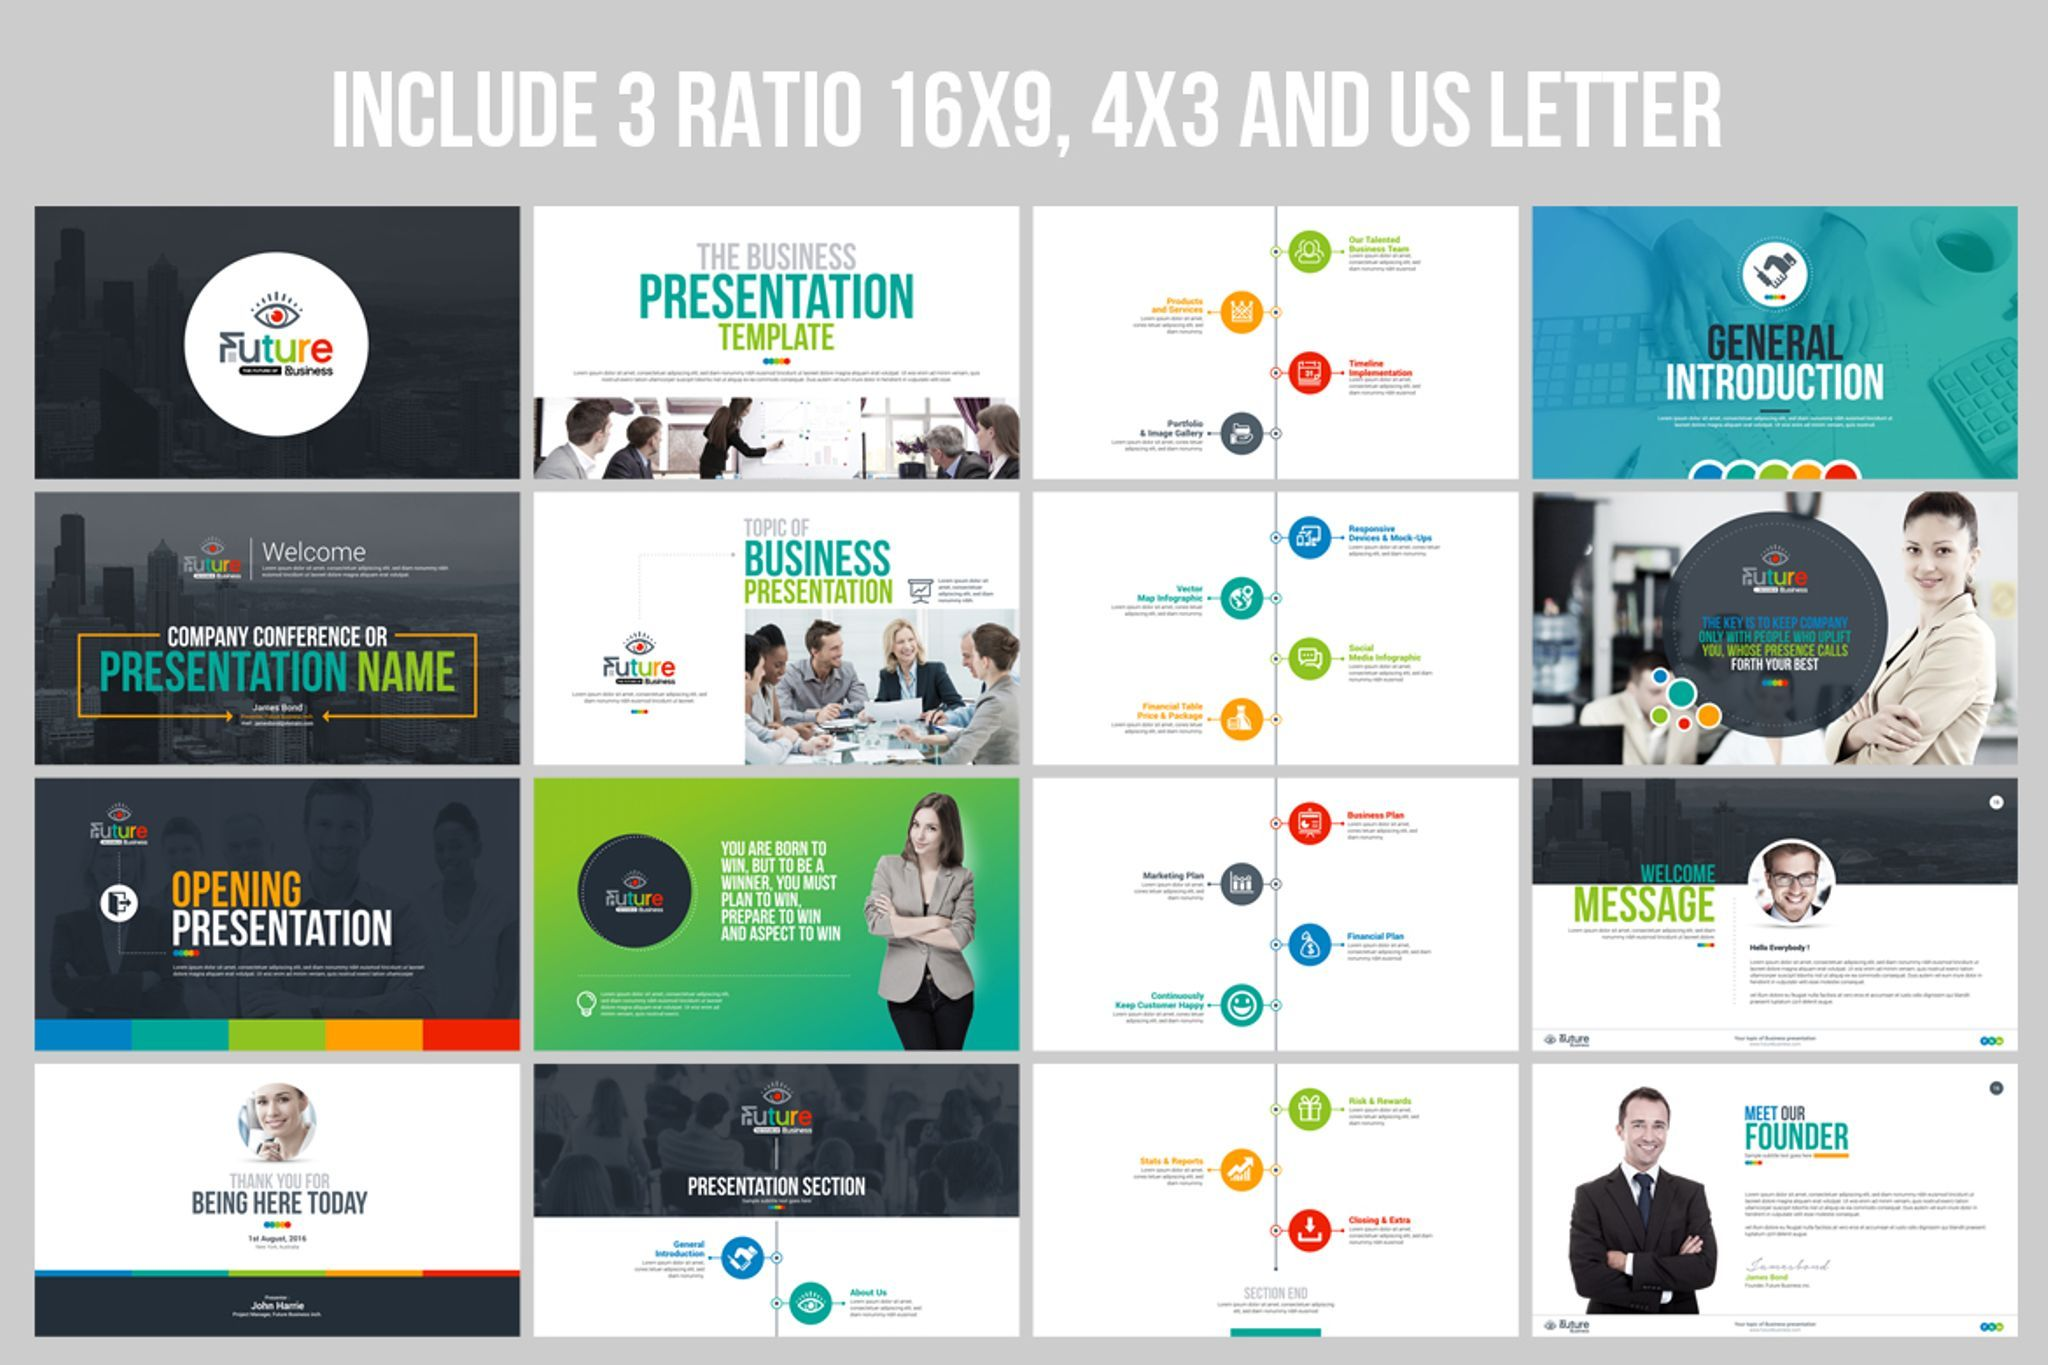 Business Plan Presentation Animated PPTX, Infographic